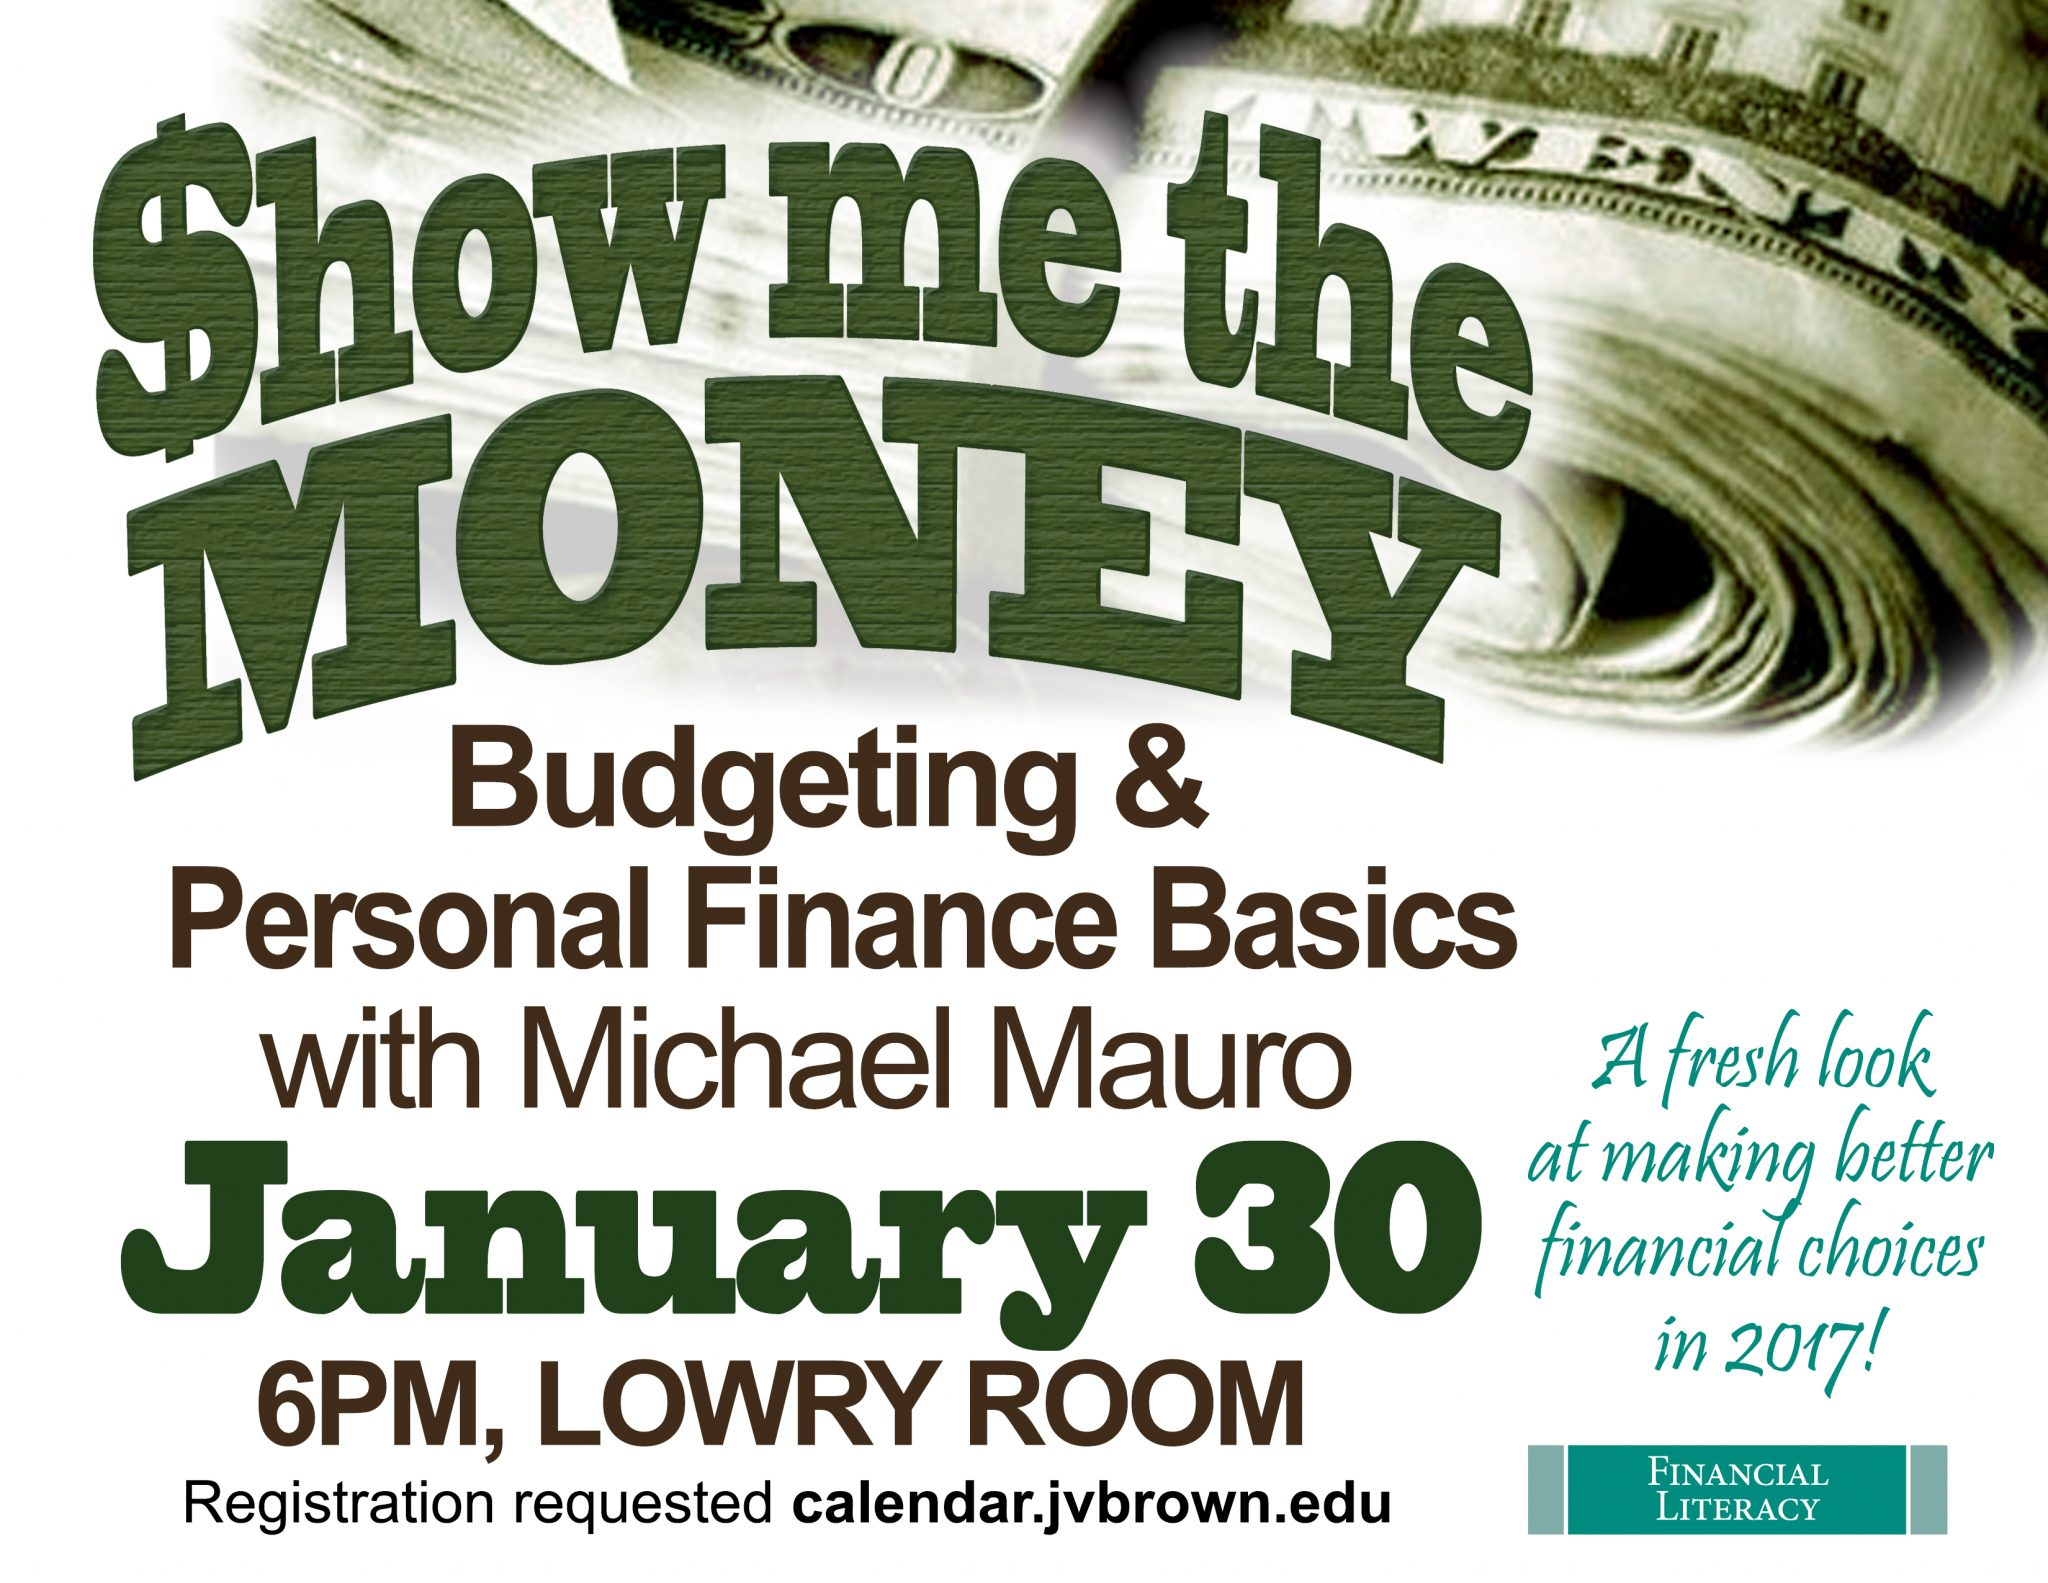 master your personal finances in 2017 with budgeting workshop at